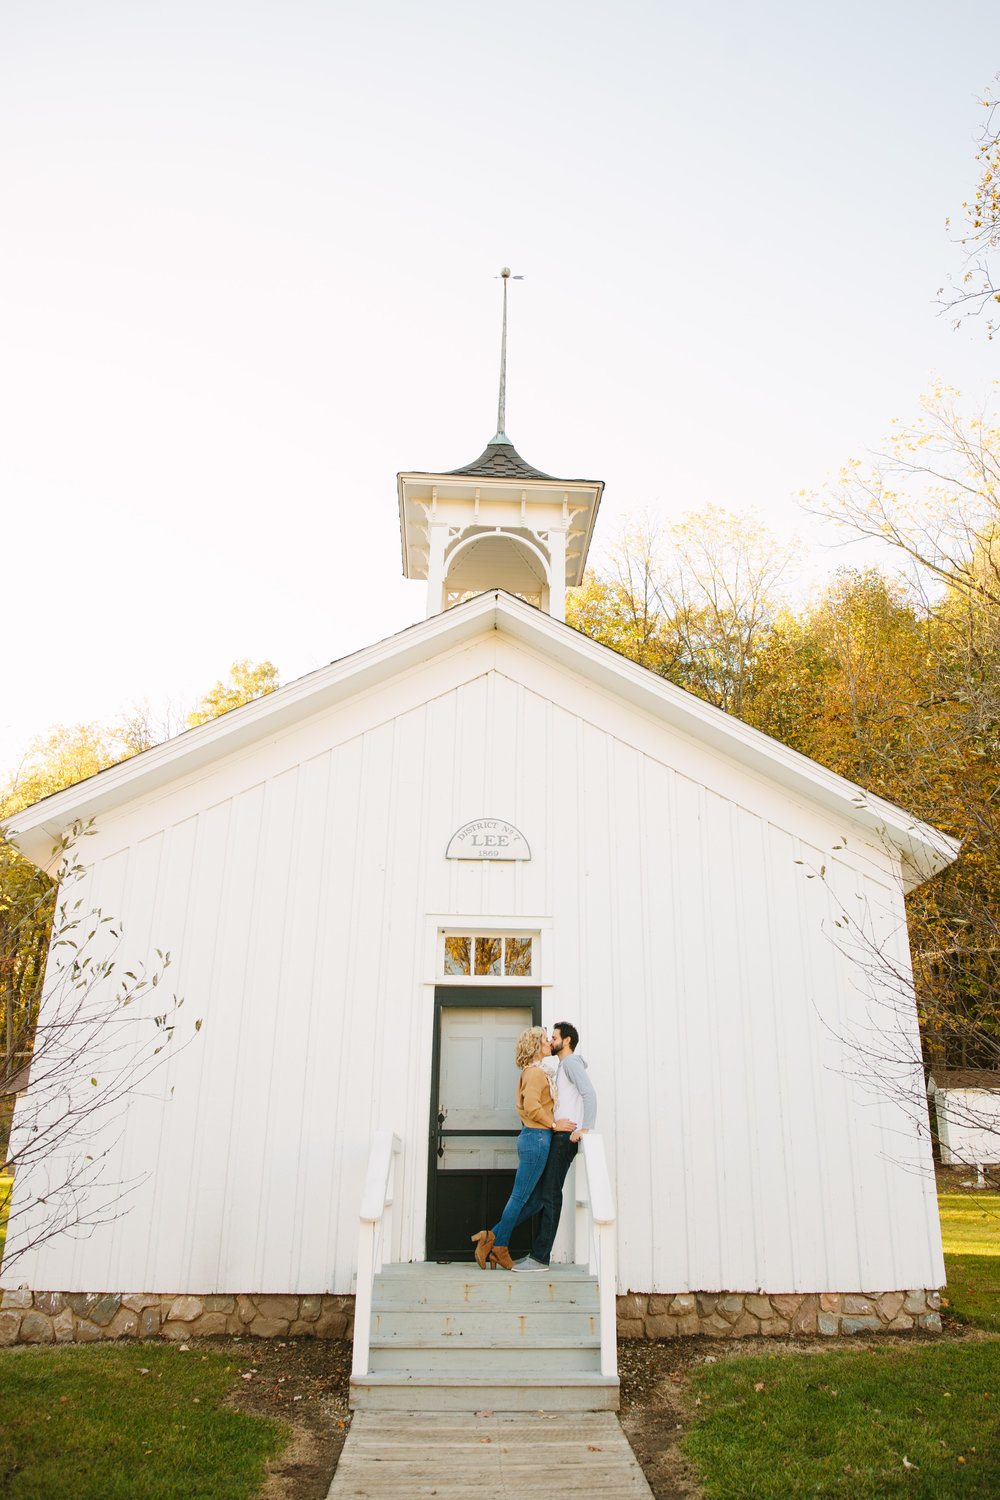 charltonpark_engagementsession_grandrapidsphotographer_grandrapids_hastings_michiganwedding_fallengagement_fallwedding_jdarlingphoto_jessicadarling_westmichiganphotographer_wedding_fall_rusticwedding  004.jpg